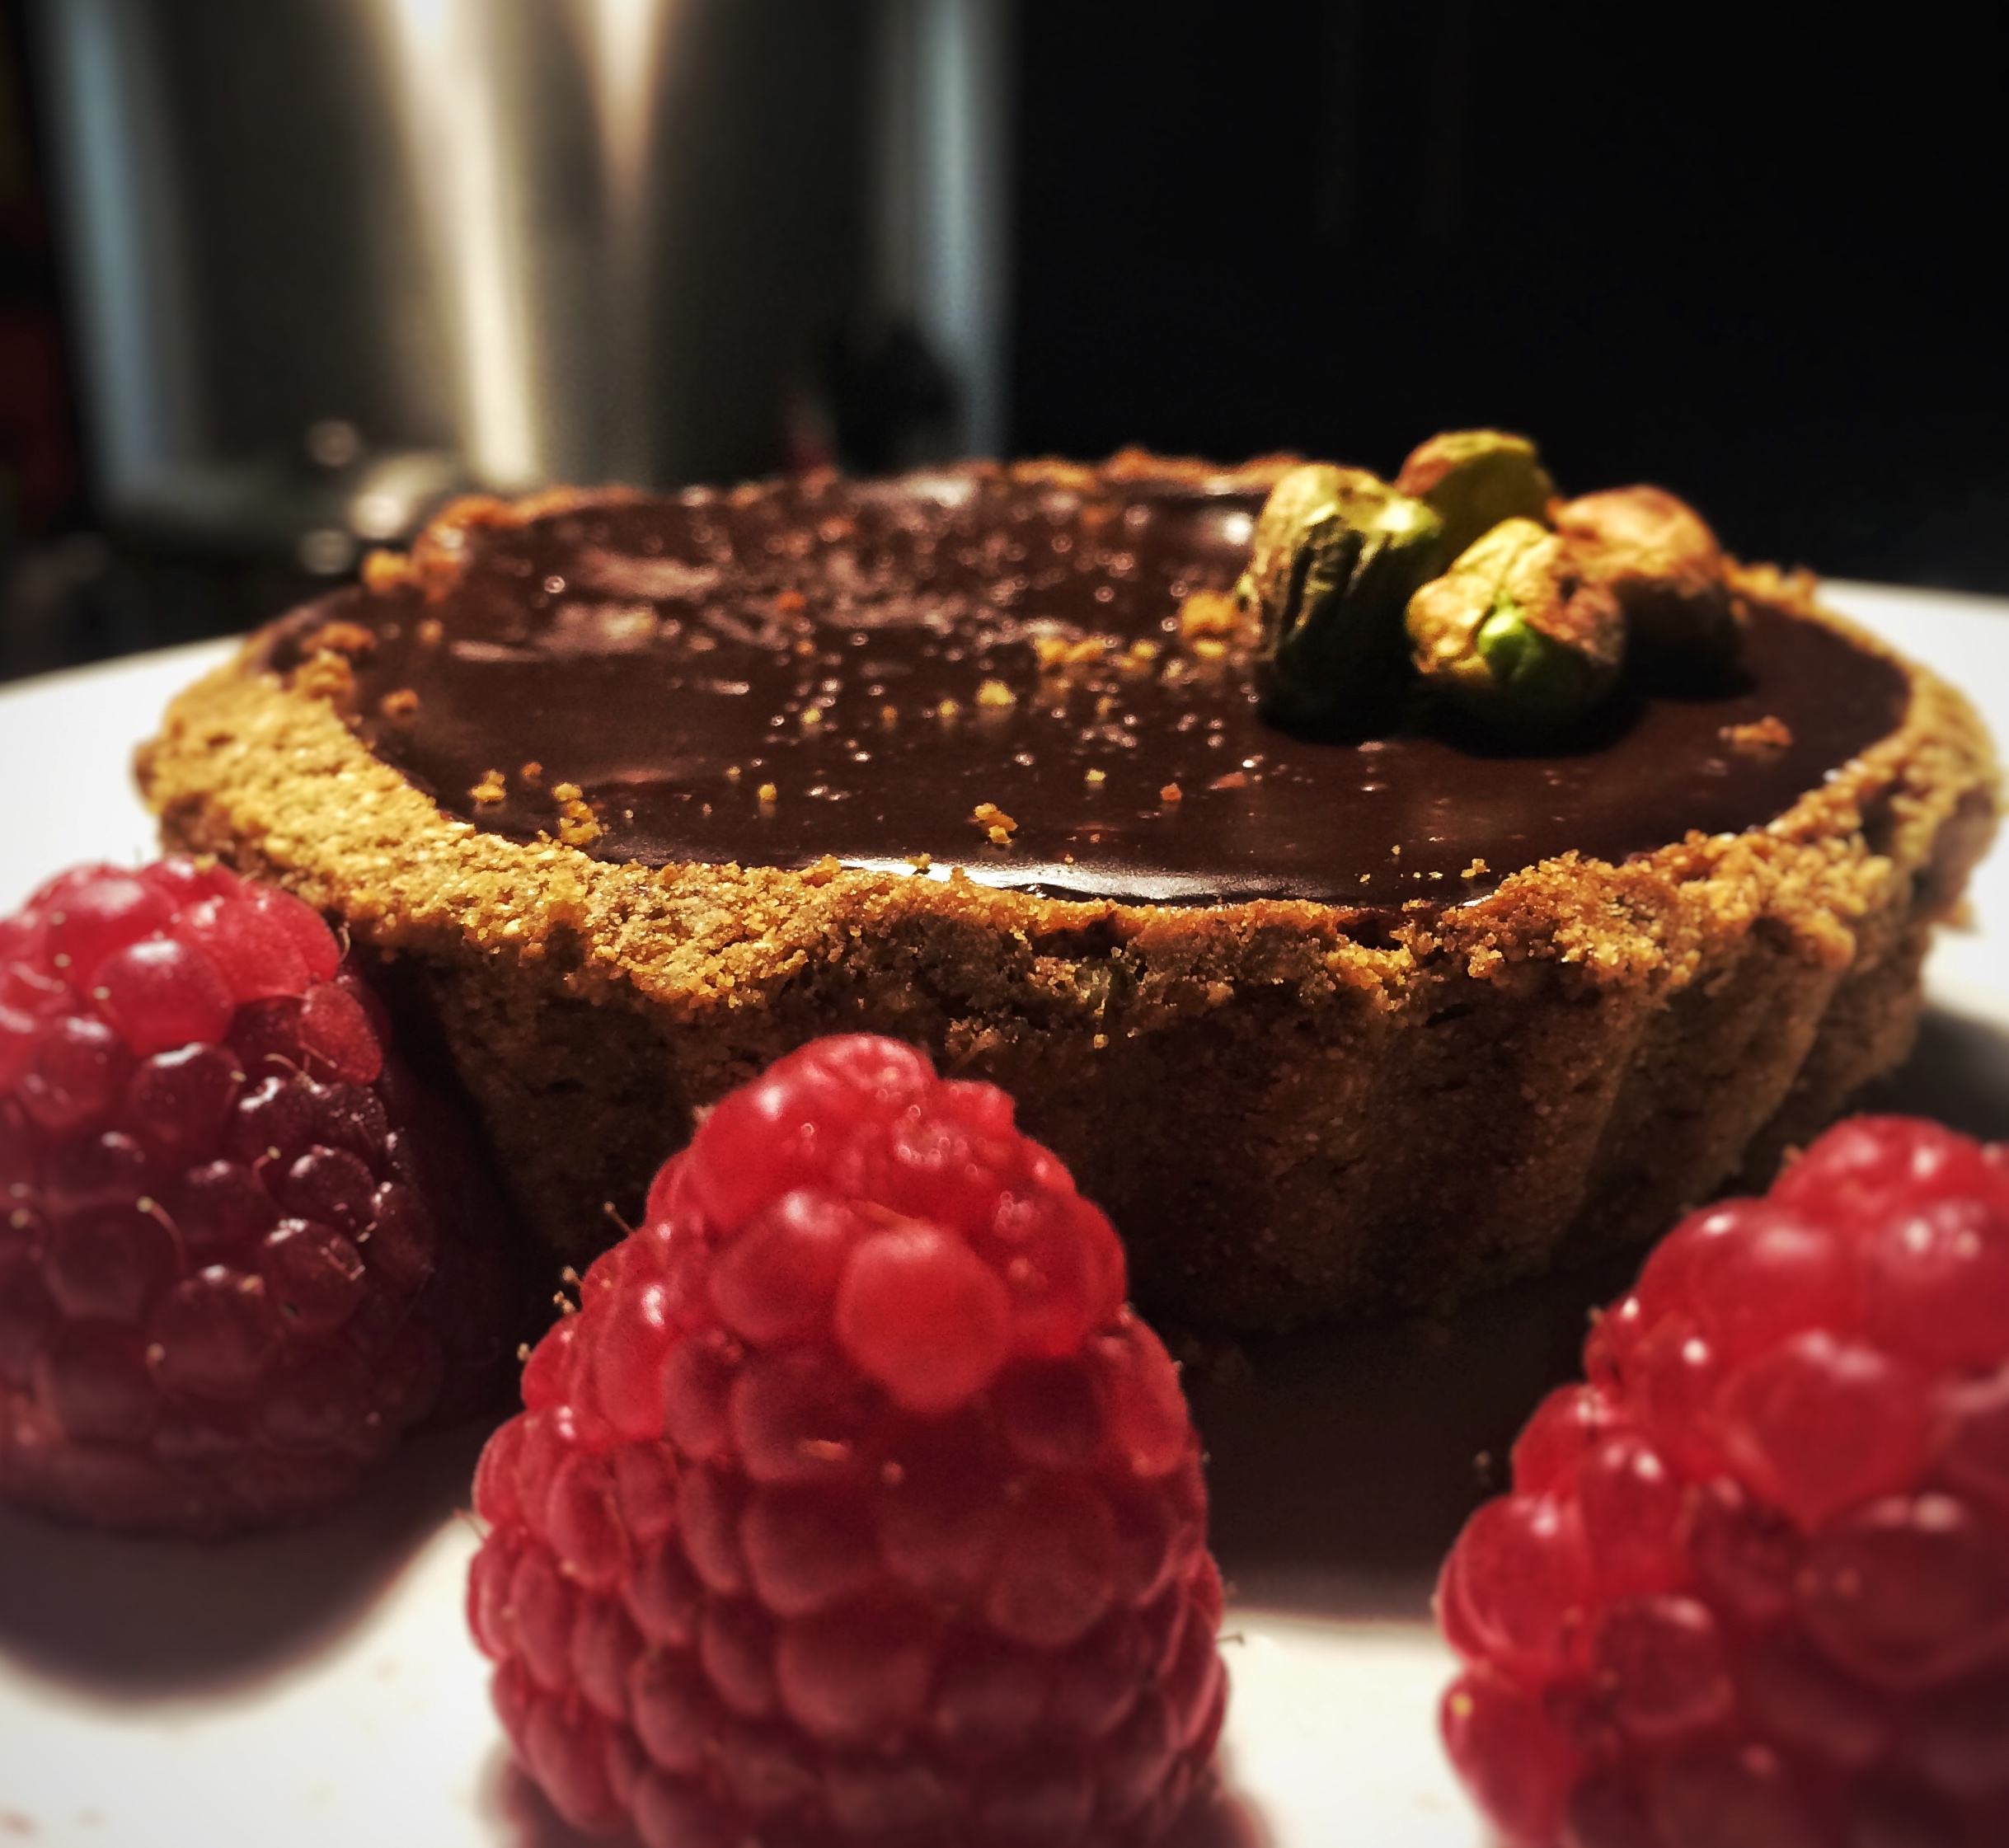 Delicious pistachio and chocolate tart, gluten free and really low in sugar, you wouldn't even know it!